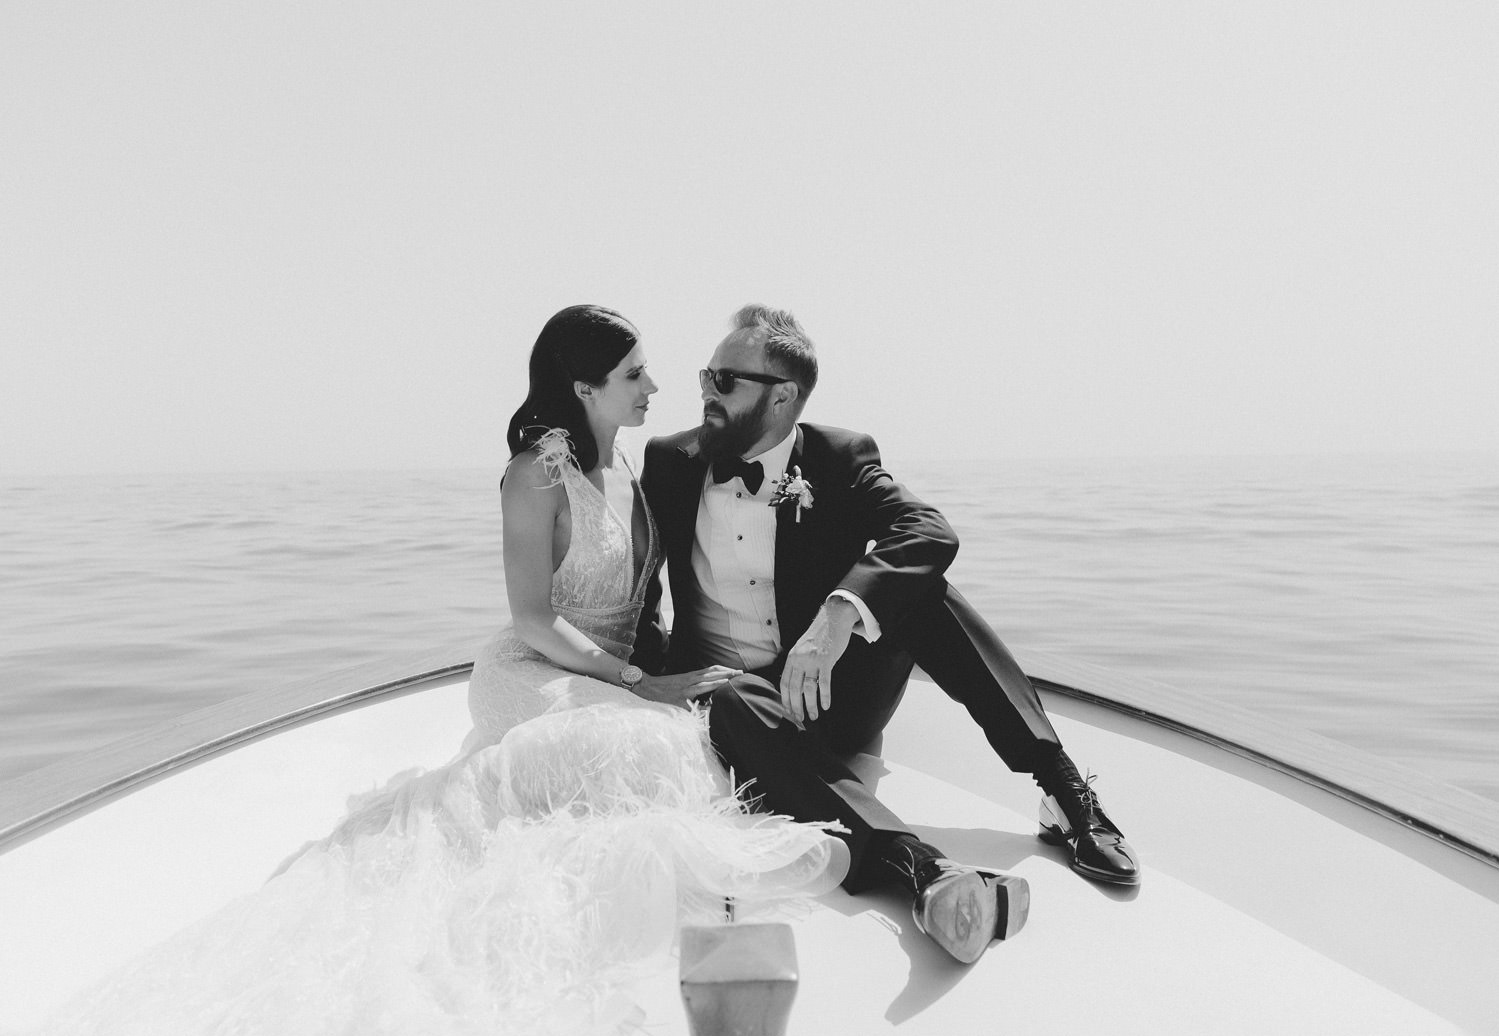 Luxury wedding on the Amalfi Coast. Bride and groom's portrait during a boat ride | Photo: Camilla Anchisi Photography